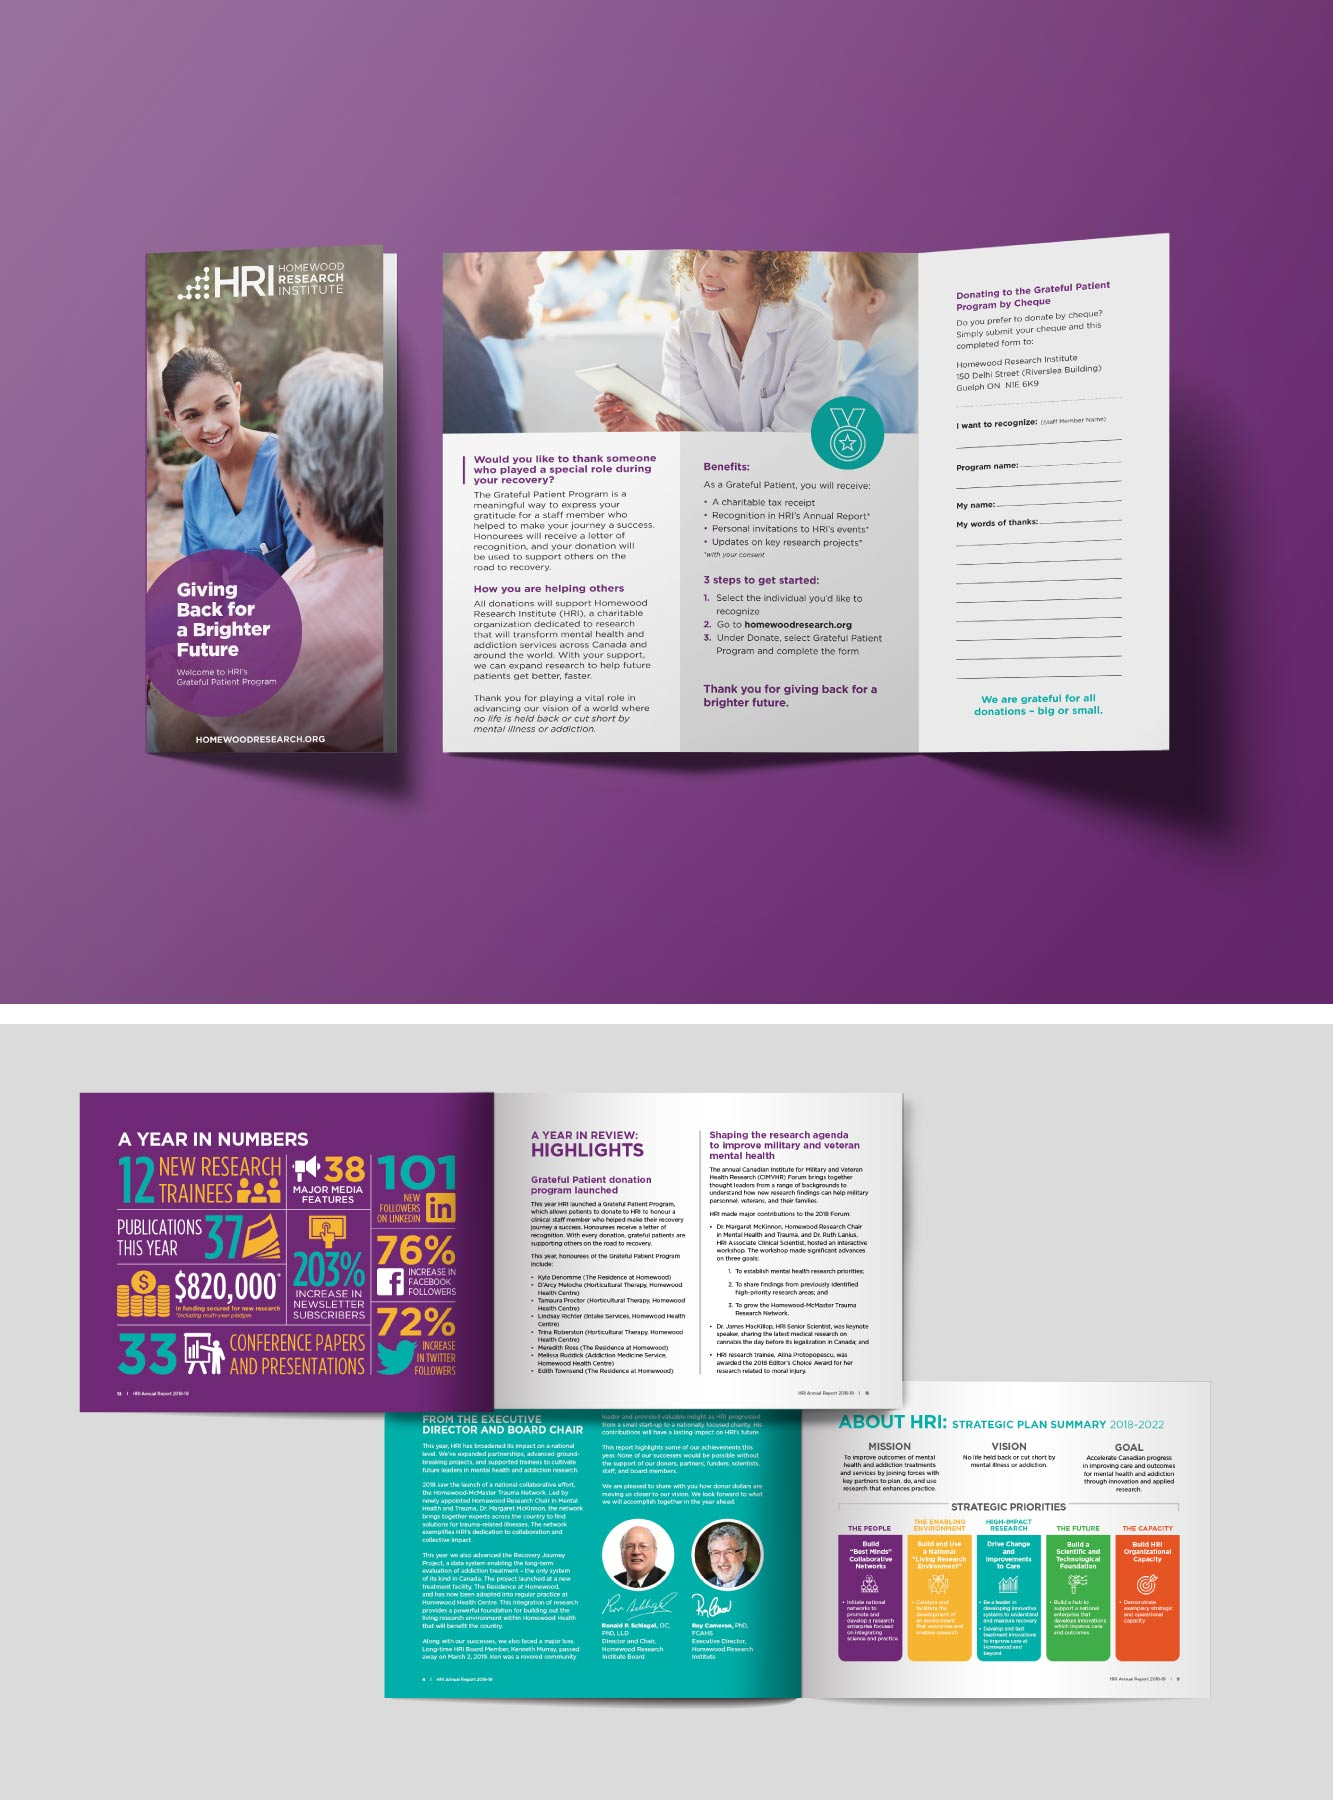 HRI Marketing Collateral and Infographic Design